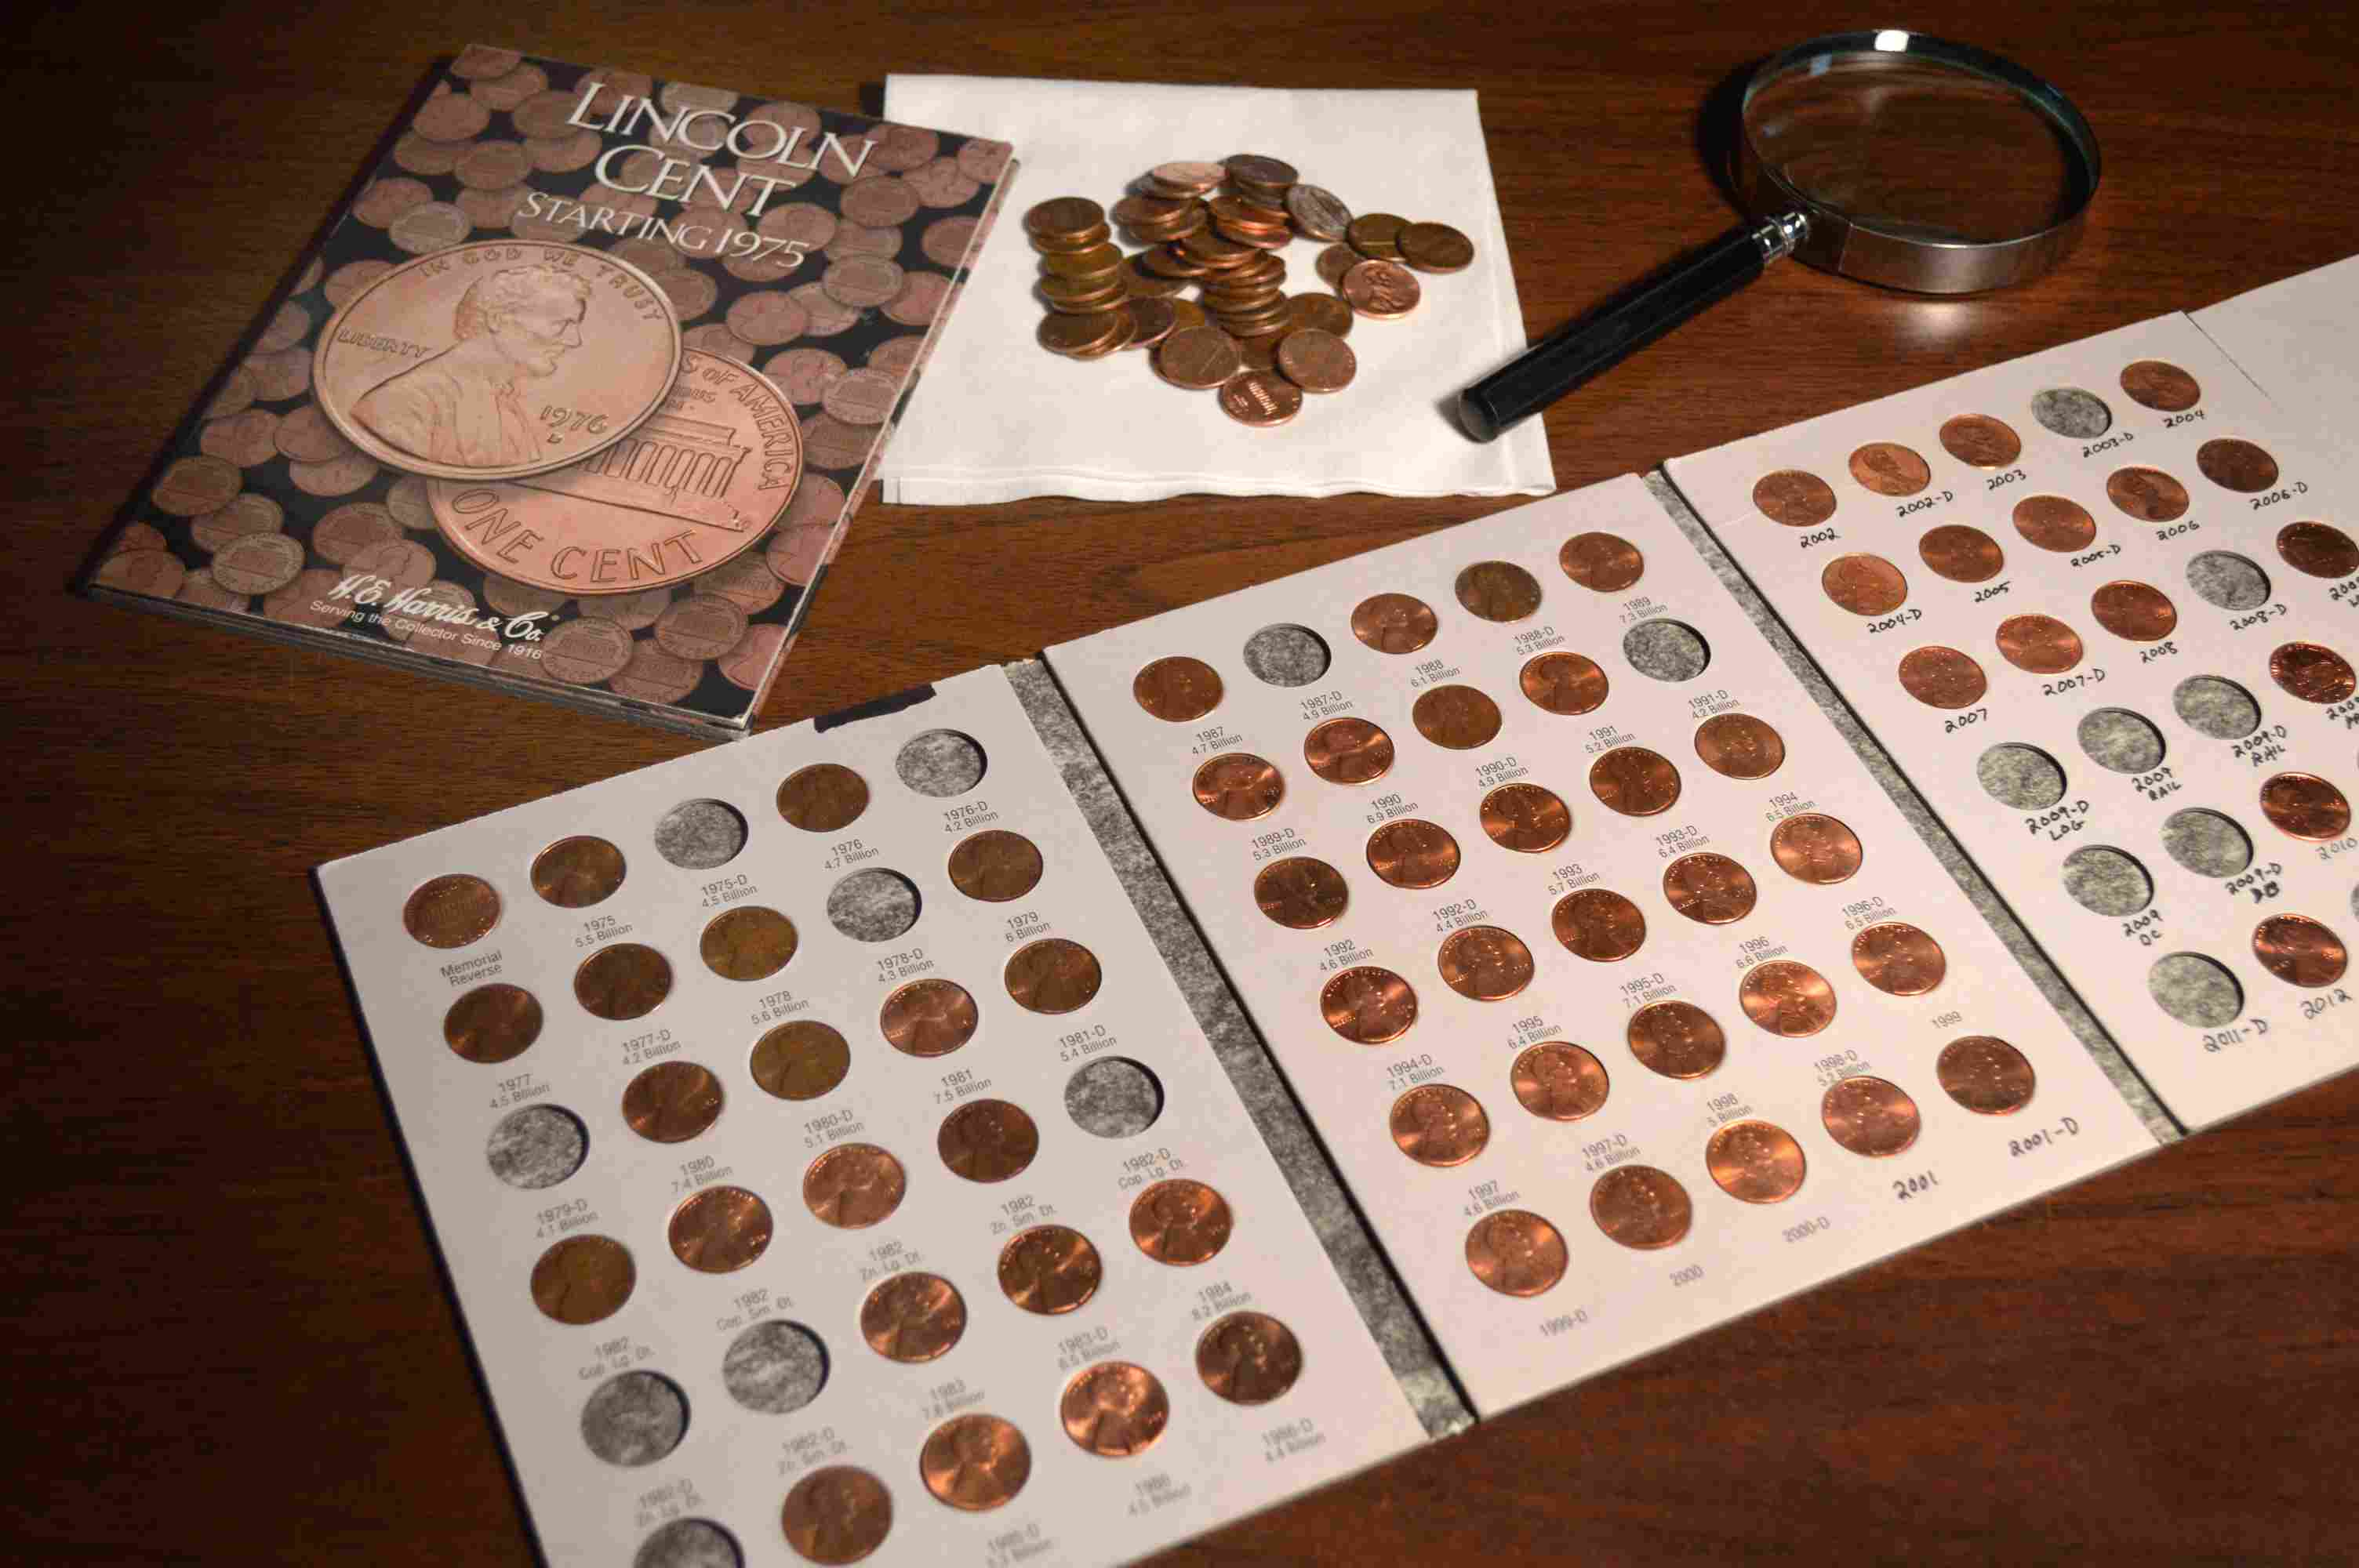 Lincoln Penny Collections